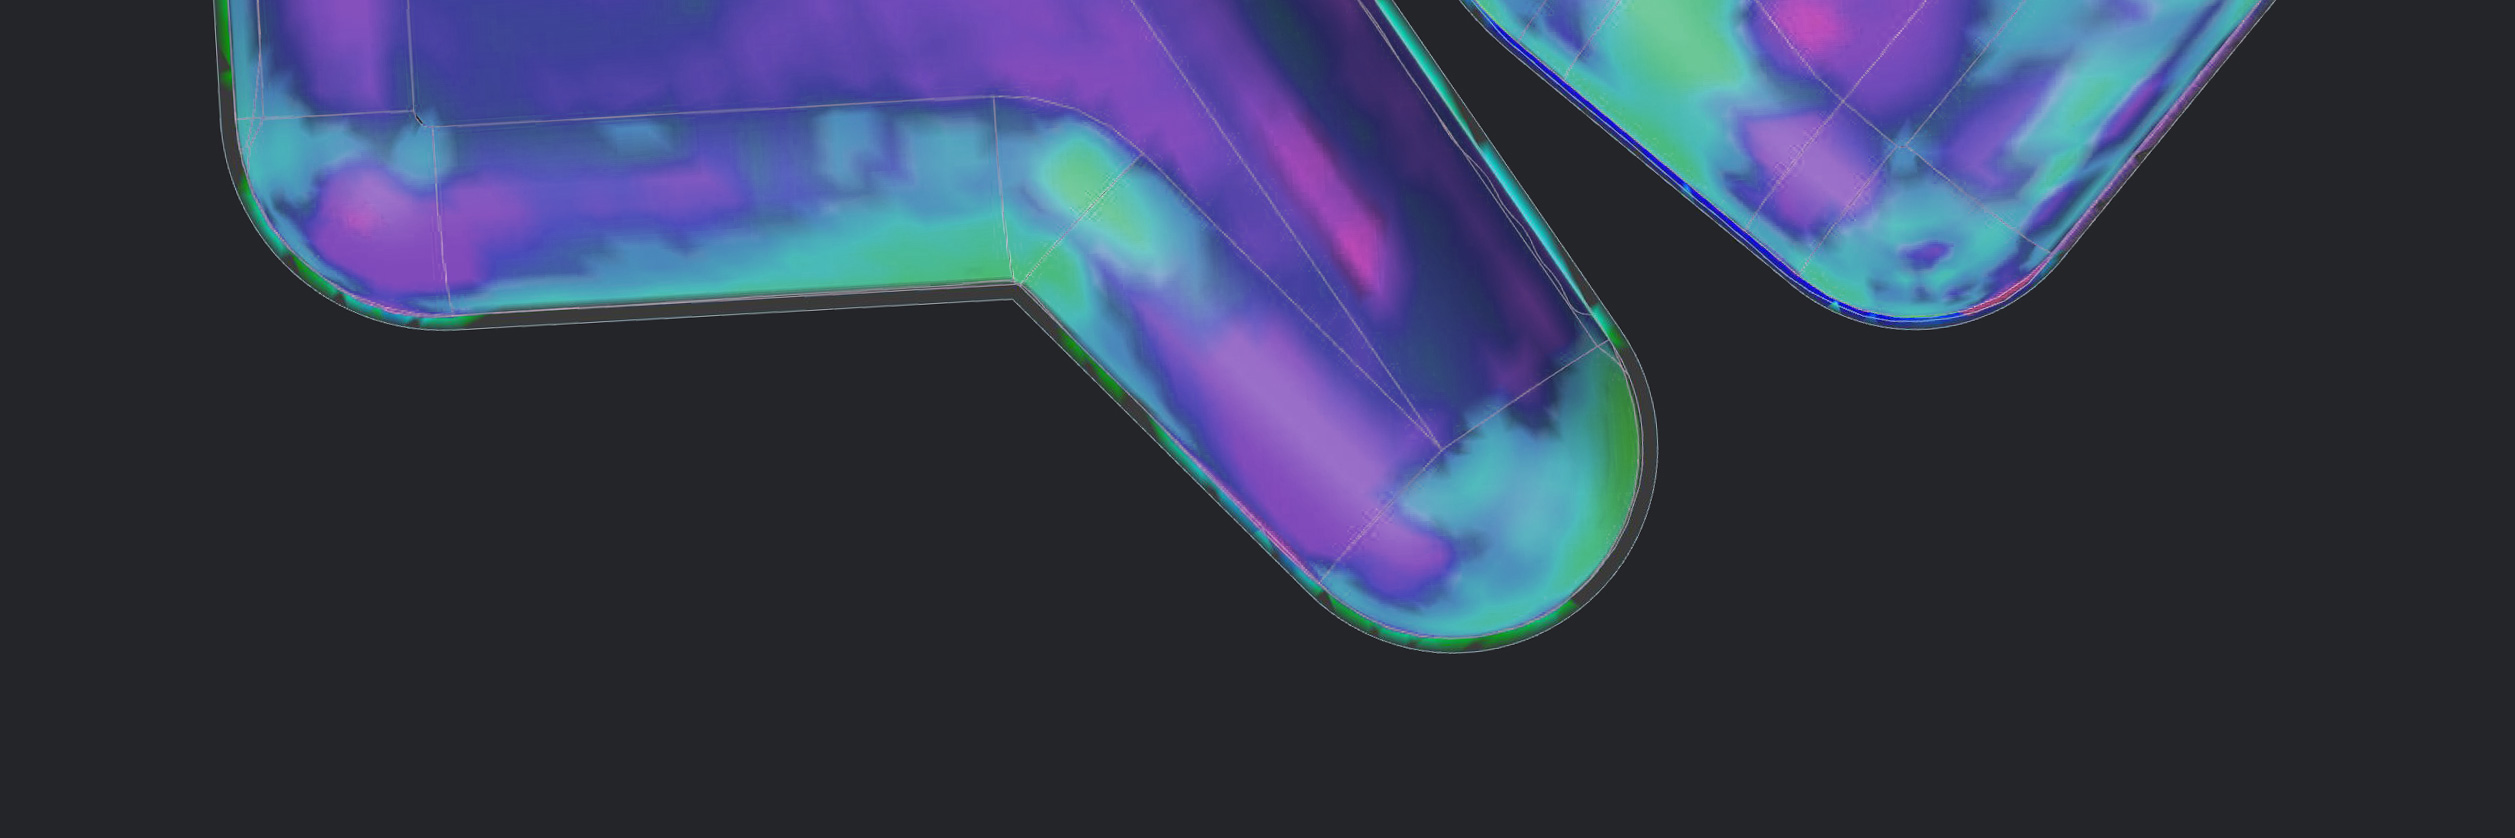 FEA face analysis performed in Siemens NX of a skatepark bowl structure